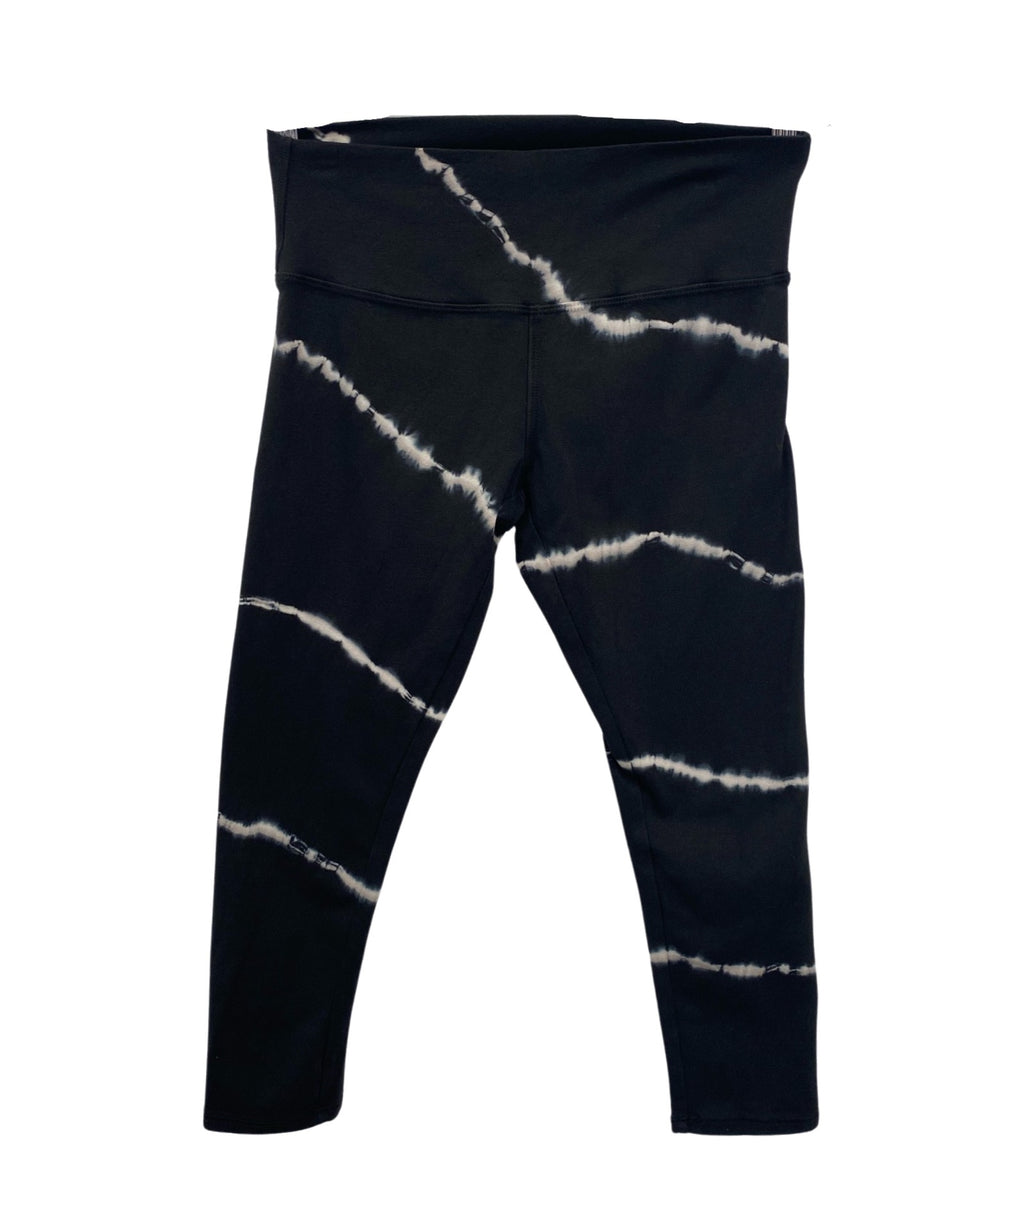 T2 Love Girls Tie Dye Crop Legging Black/White